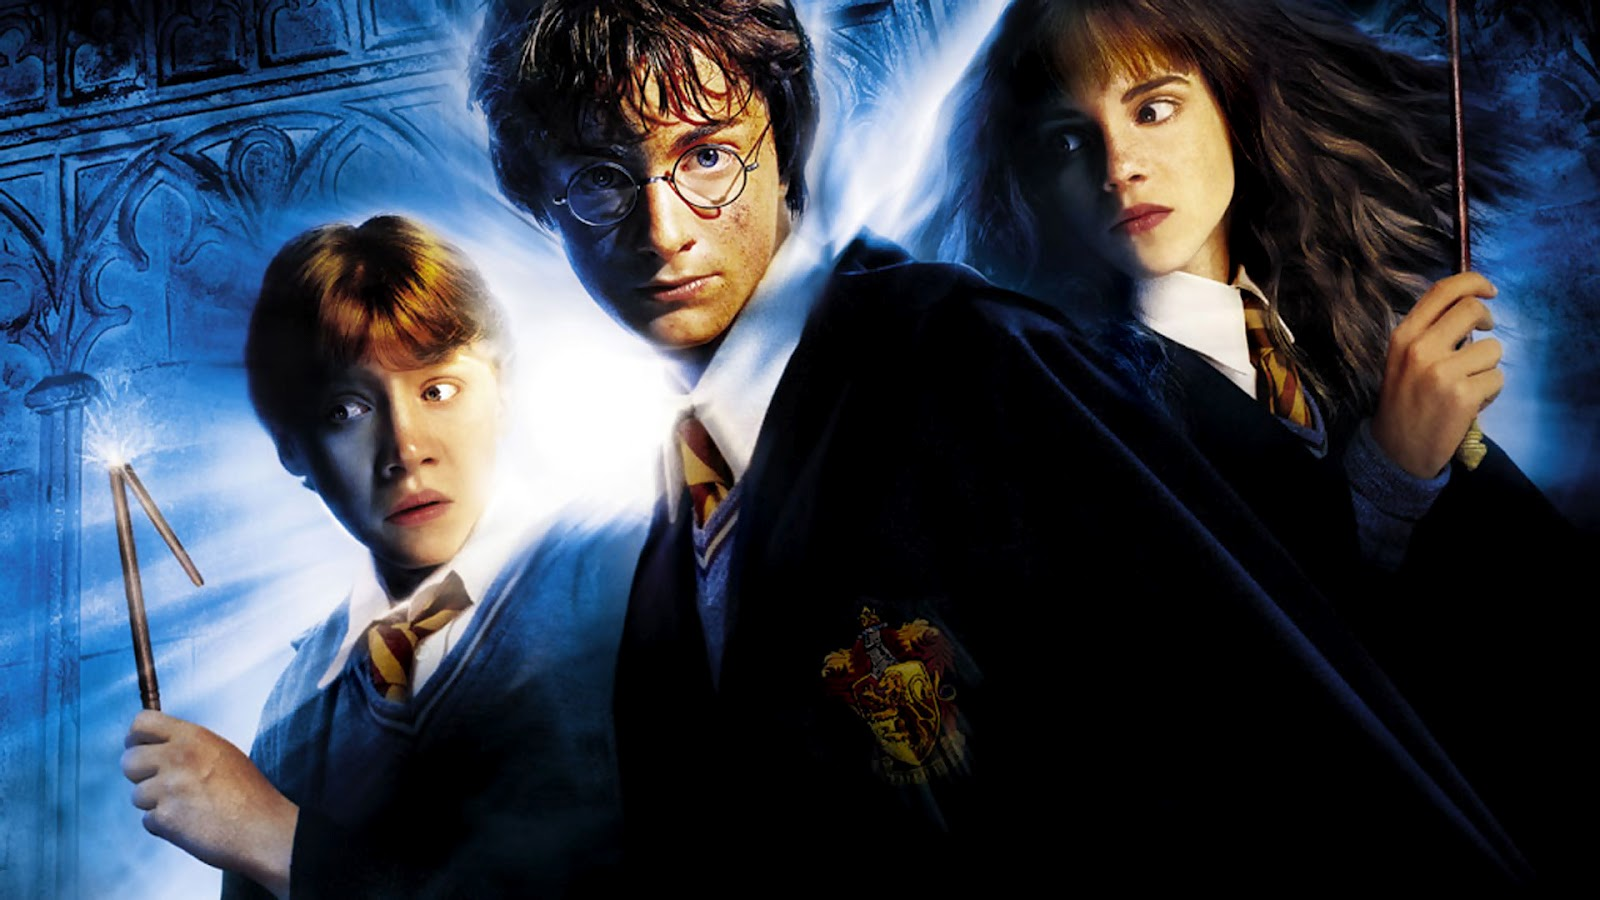 http://4.bp.blogspot.com/-tsSDEKLP51s/UBHs29ZEX-I/AAAAAAAACjw/U1T4gsD4DIs/s1600/harry-potter-and-the-chamber-of-secrets2.jpg